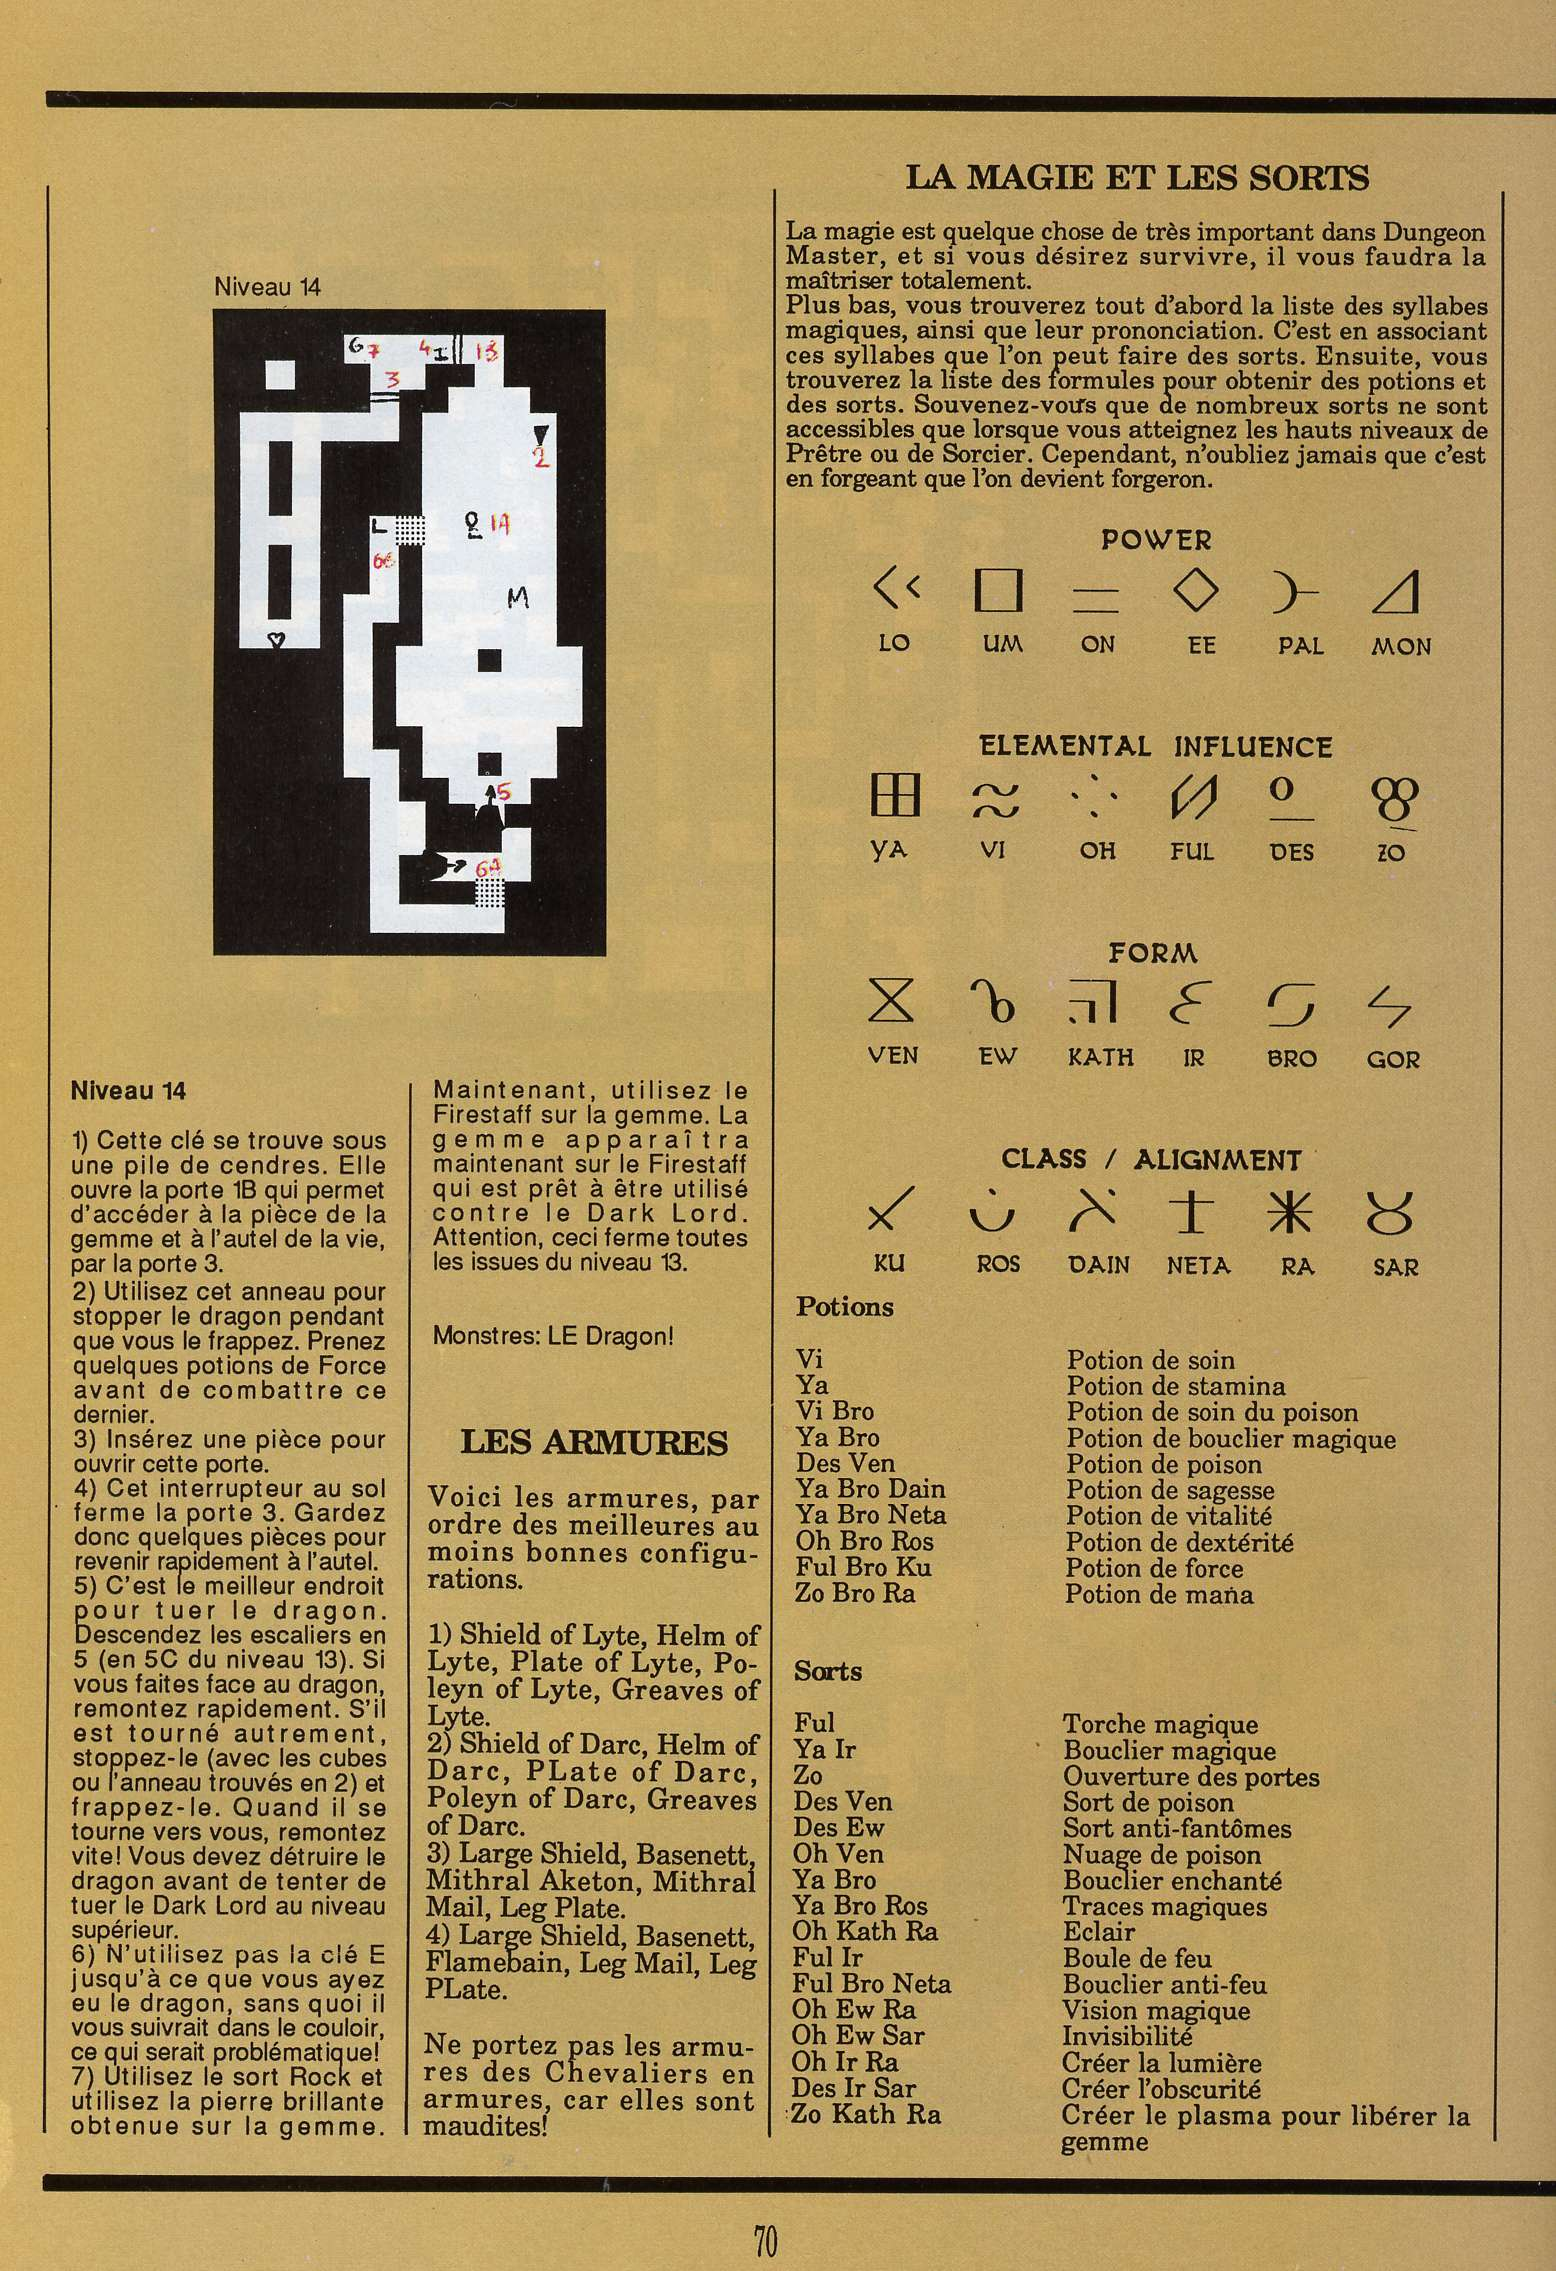 Dungeon Master for Atari ST Guide published in French magazine 'Gen4', Issue #9, March 1989, Page 70